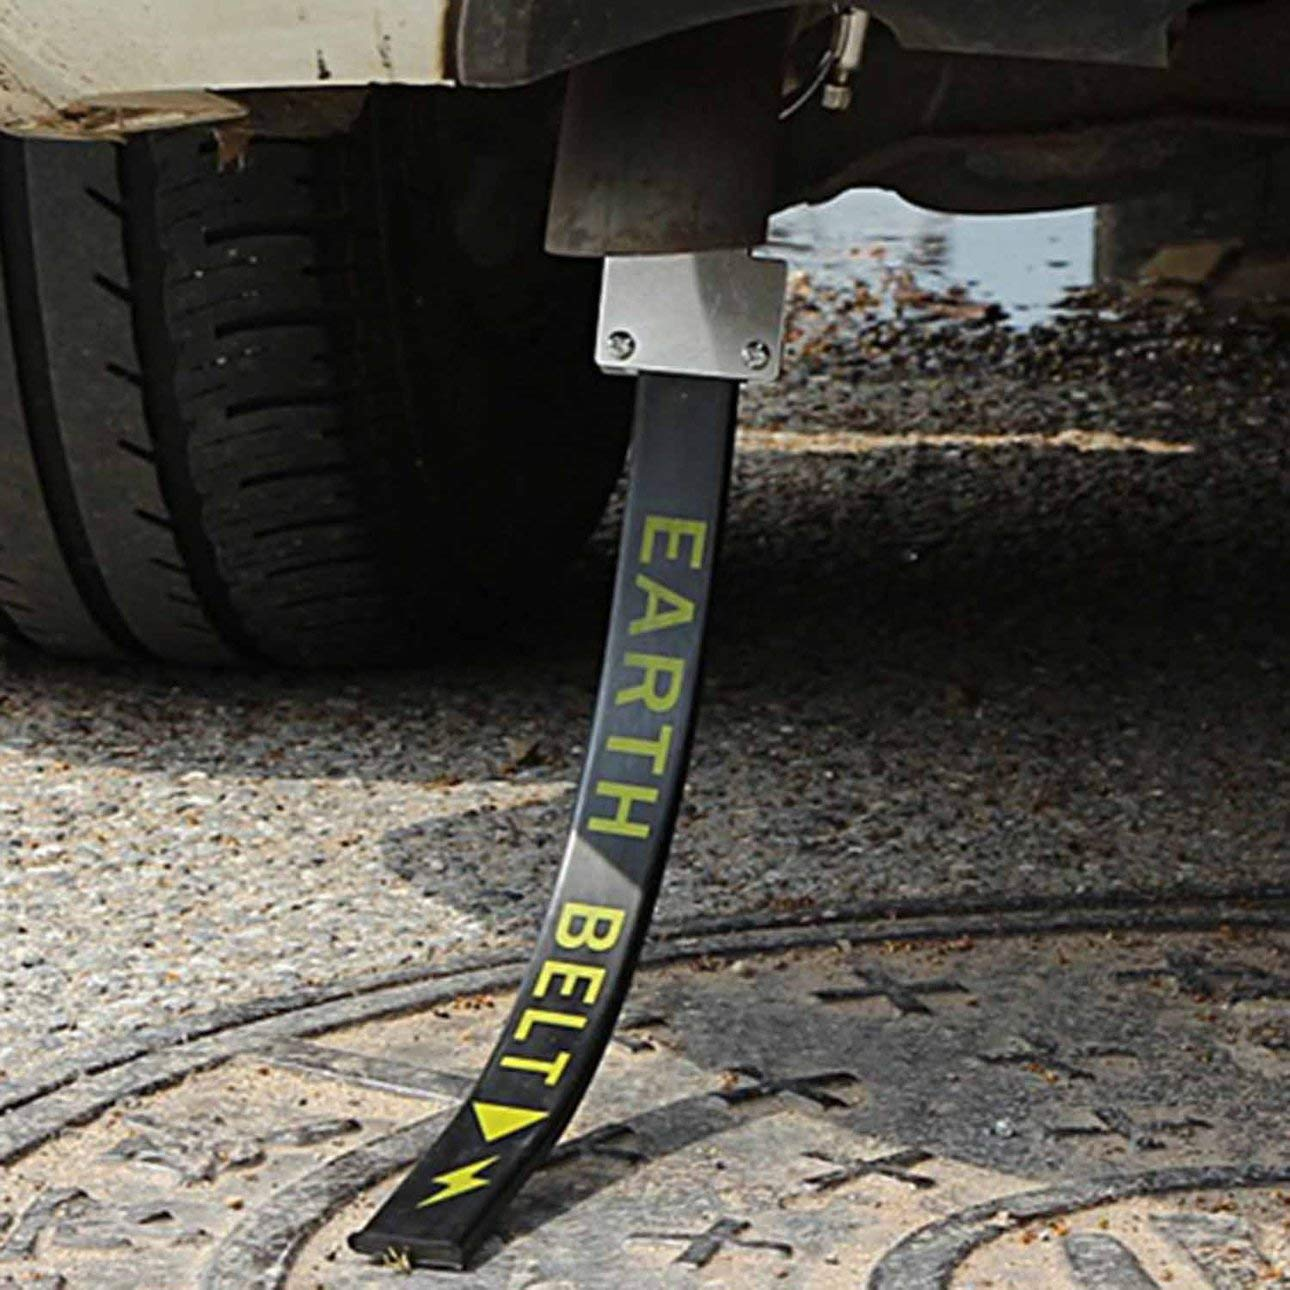 Black/&Car Version Car Anti Static Strap Electrostatic Earth Belt Canceller Reflective Avoid Antistatic Ground Wire Strap for Cars Trucks